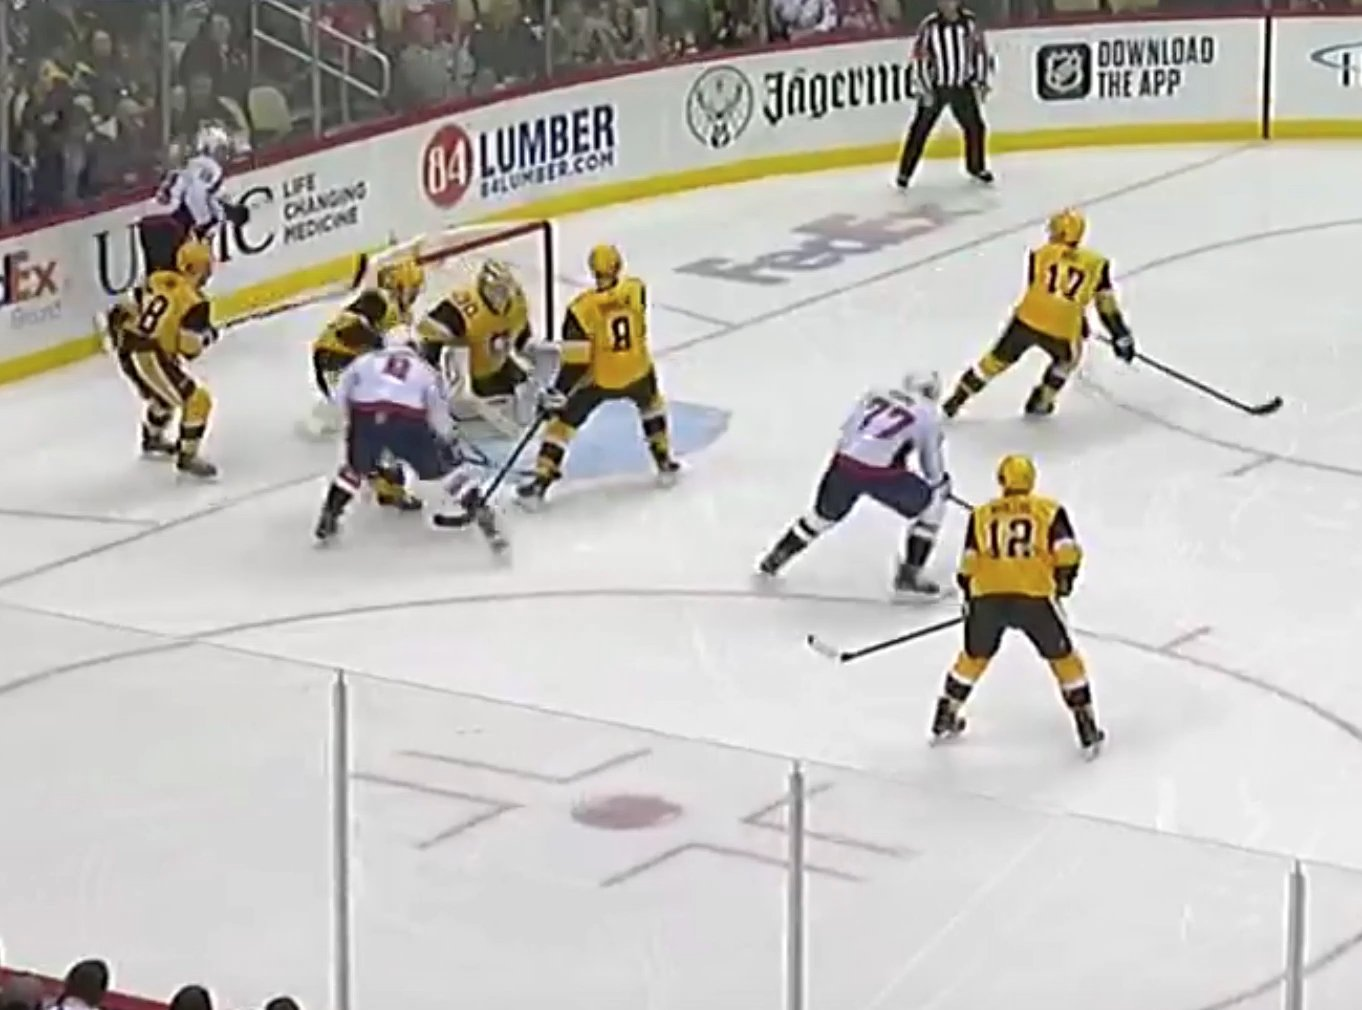 RECAP 67: Coming Down. Penguins 2 Game Win Streak Snapped, Fall to Capitals 5-2